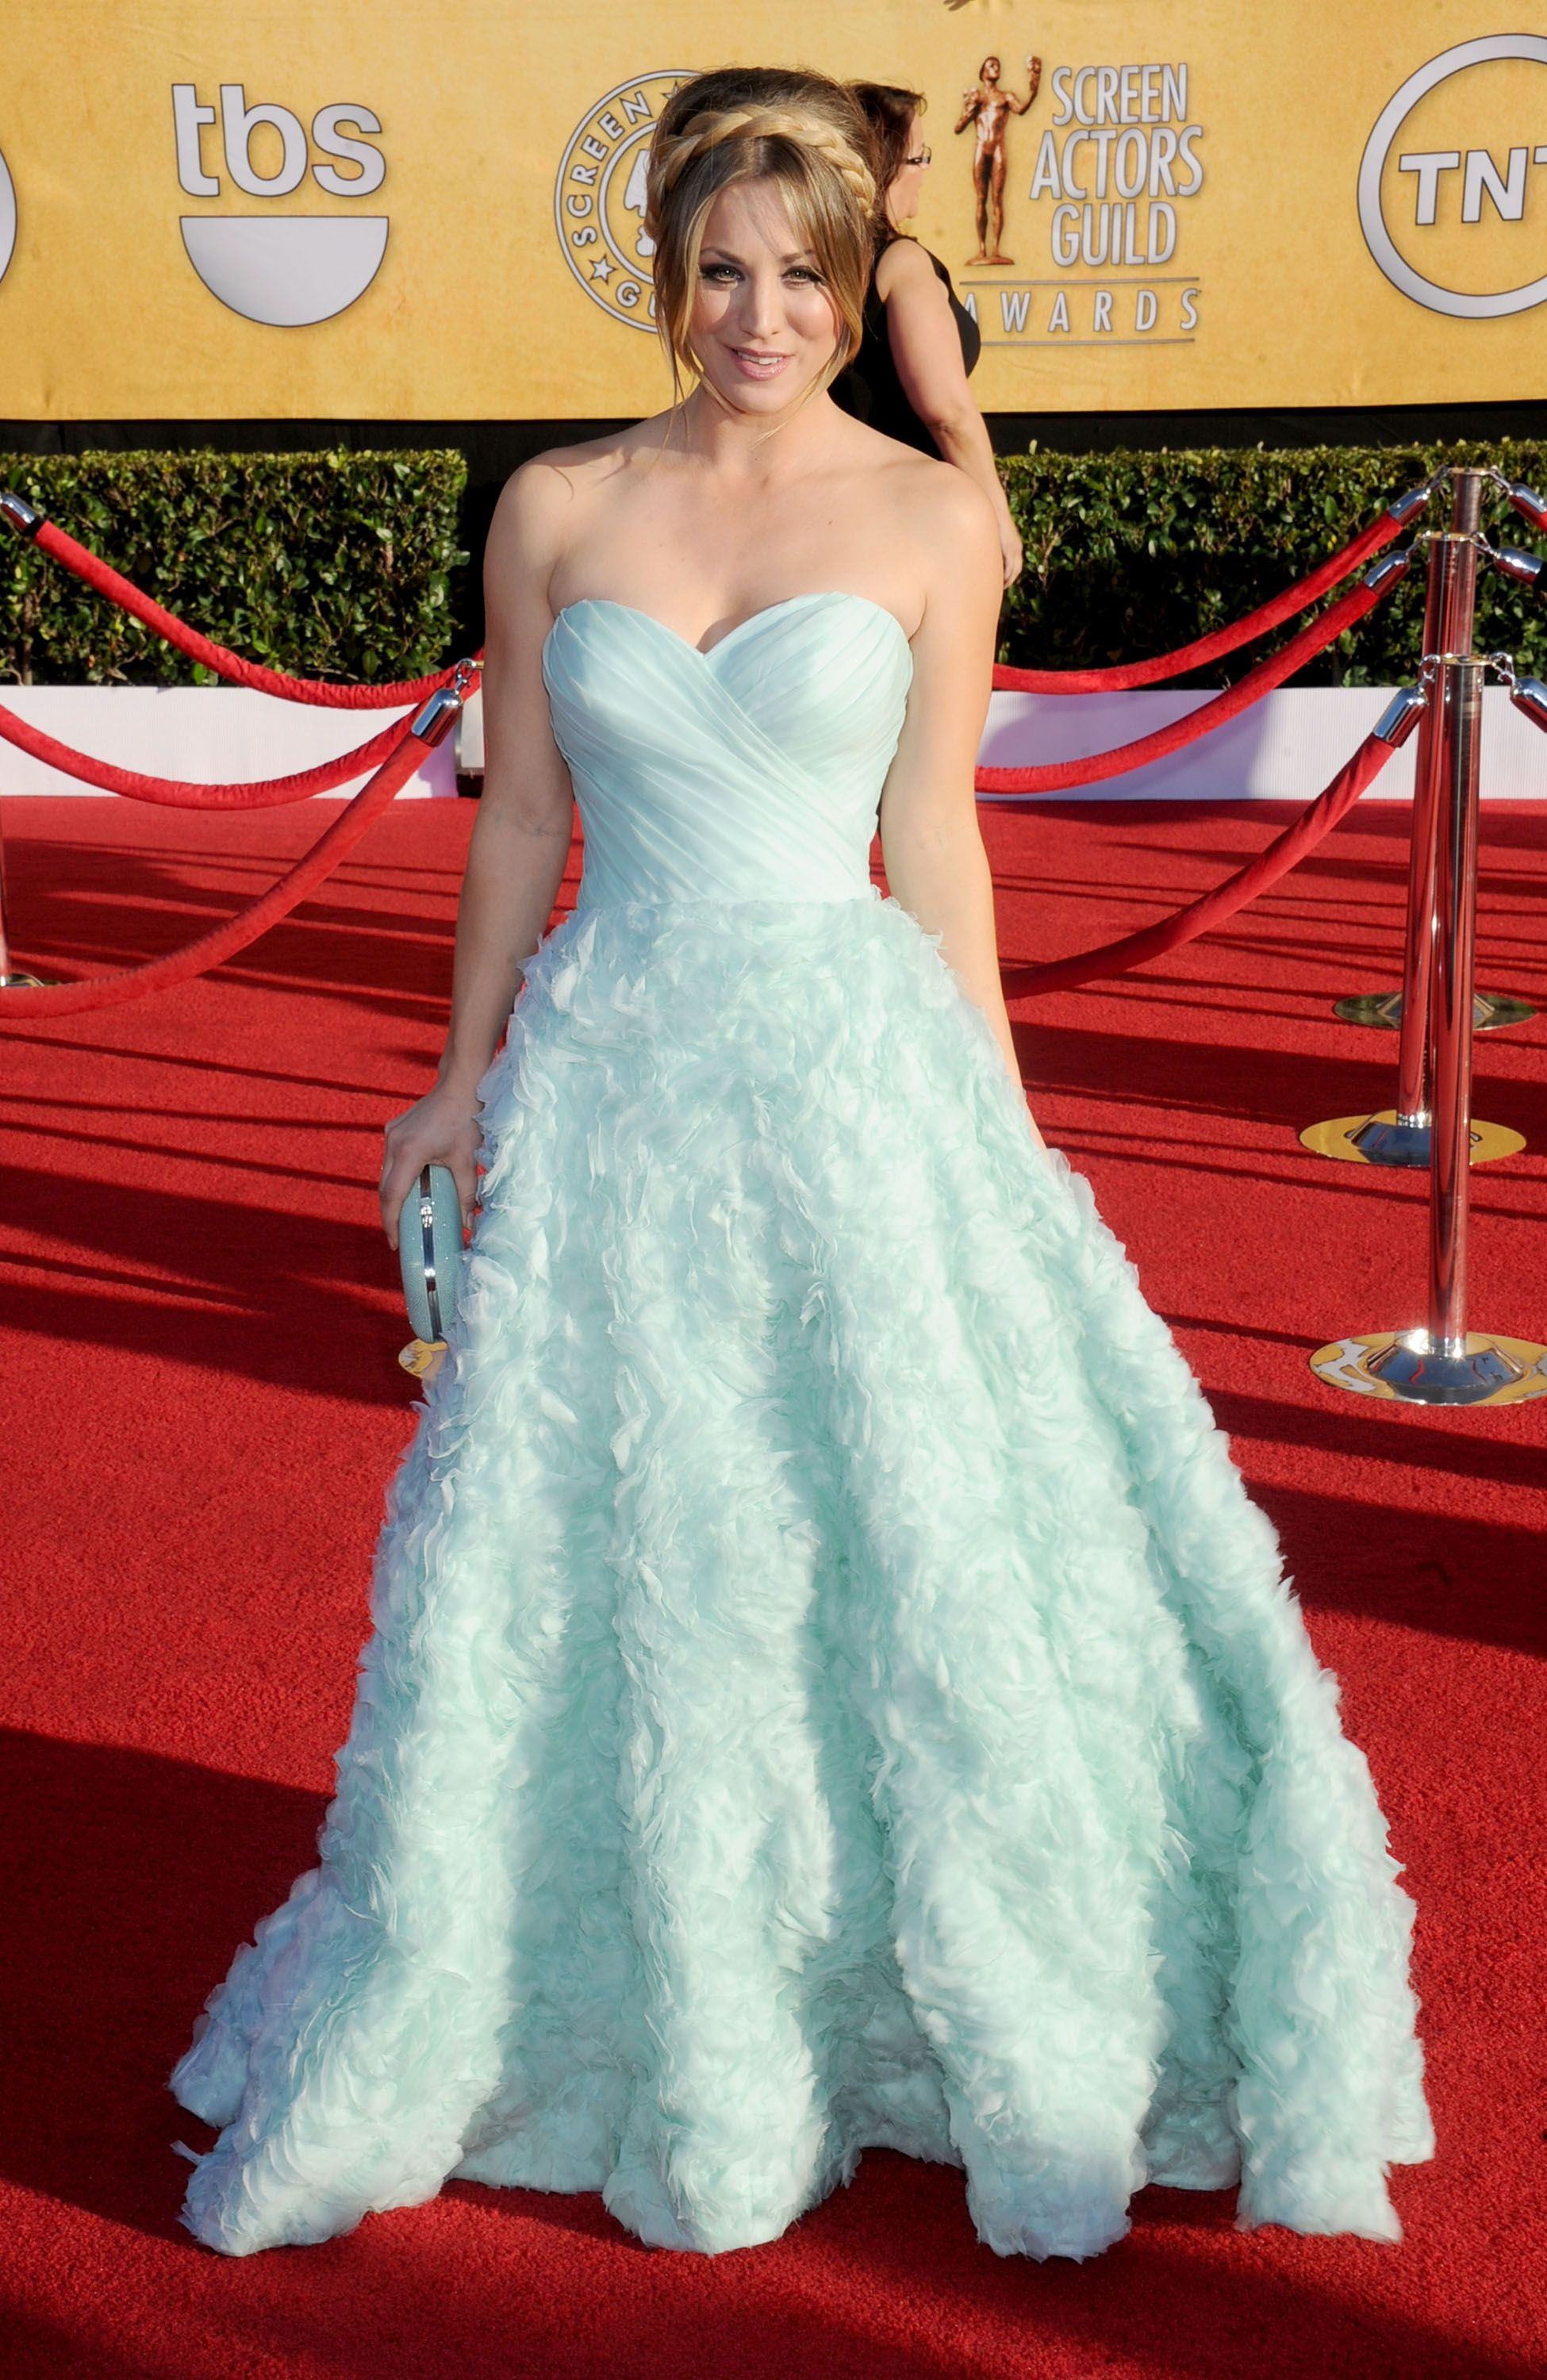 Red Carpet Dresses - Best Celebrity Dresses Throughout the Years